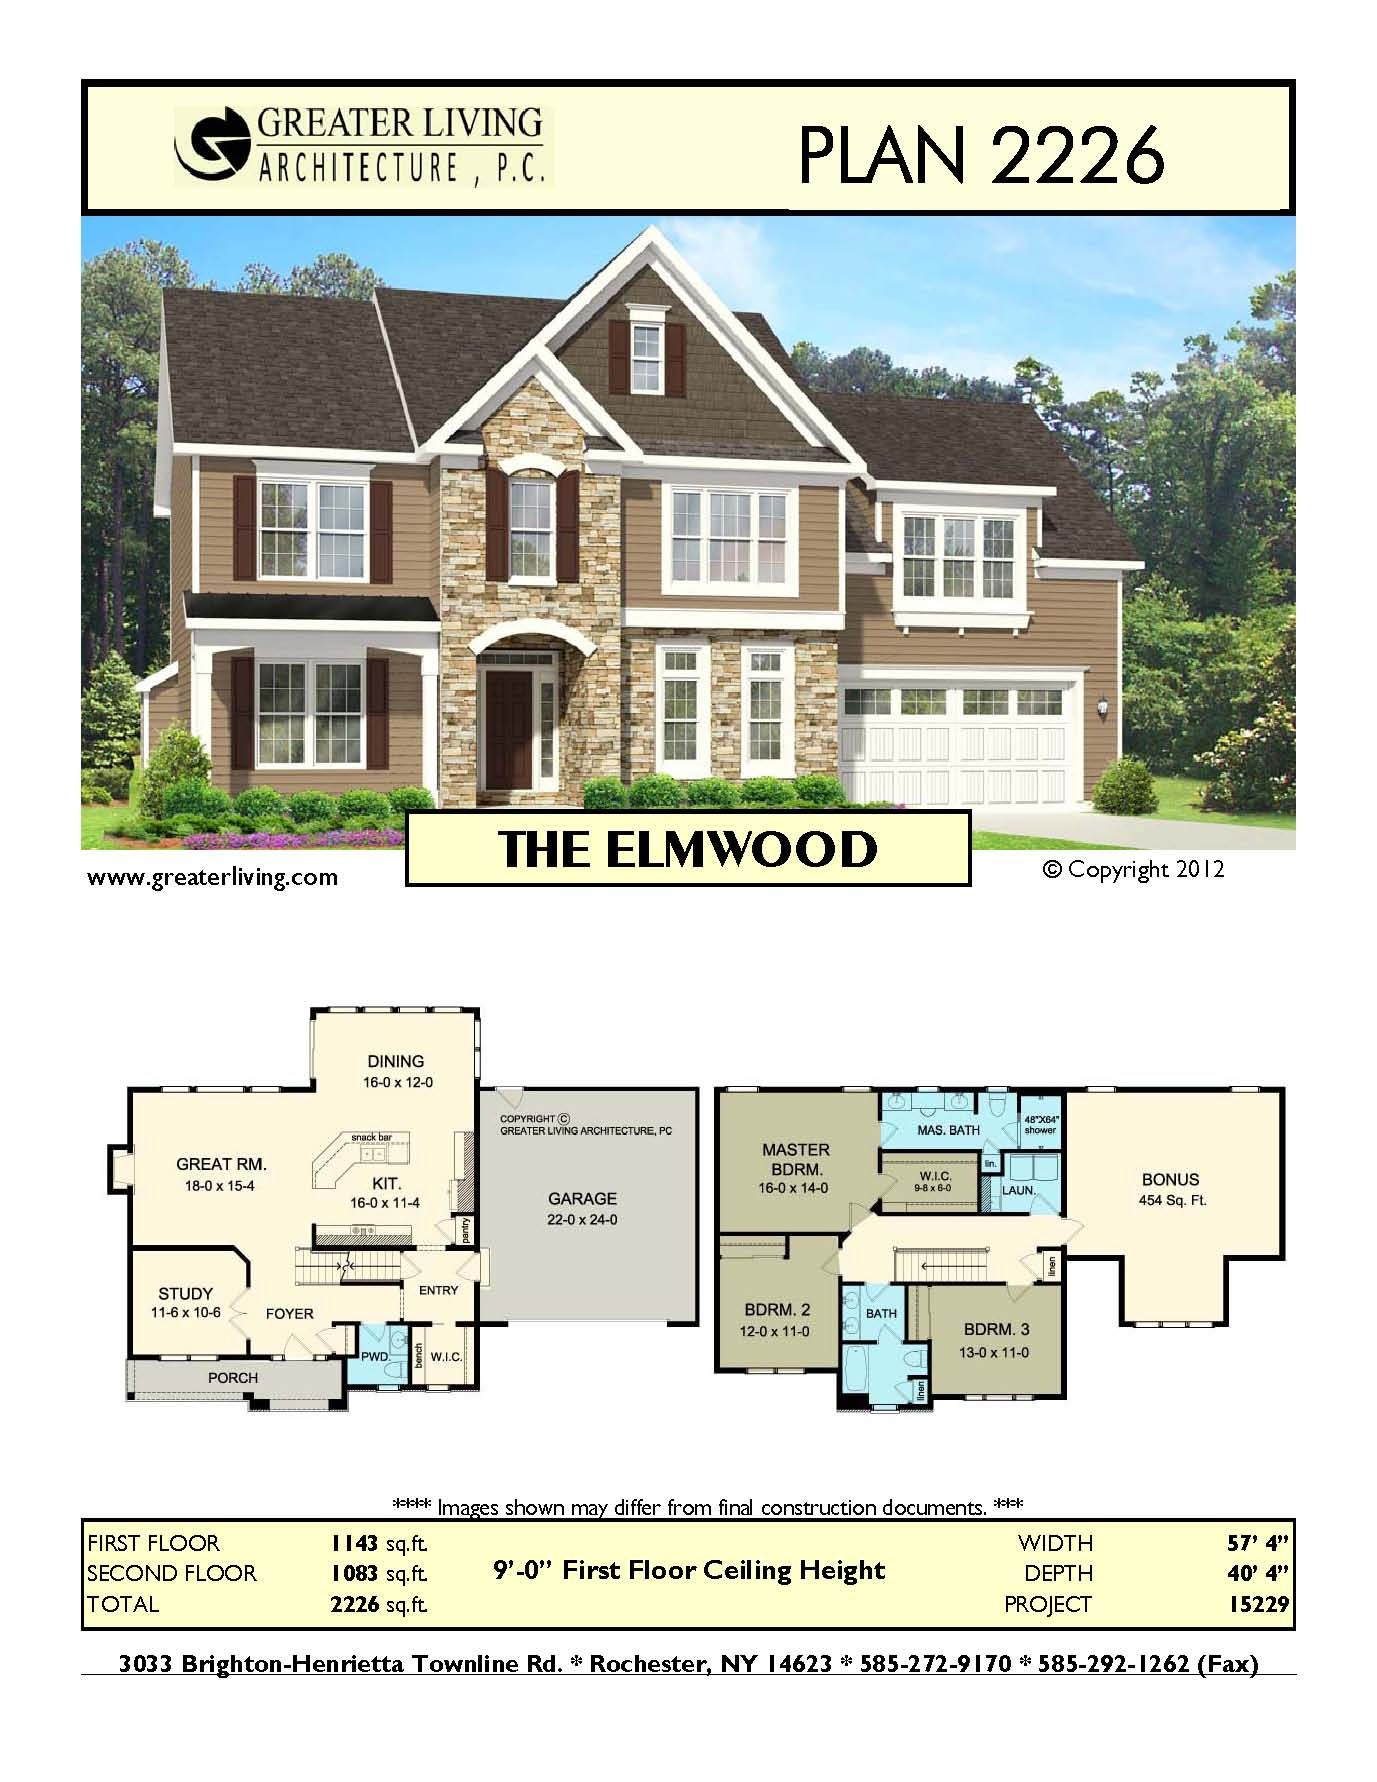 Plan 2226 THE ELMWOOD Two story home plans